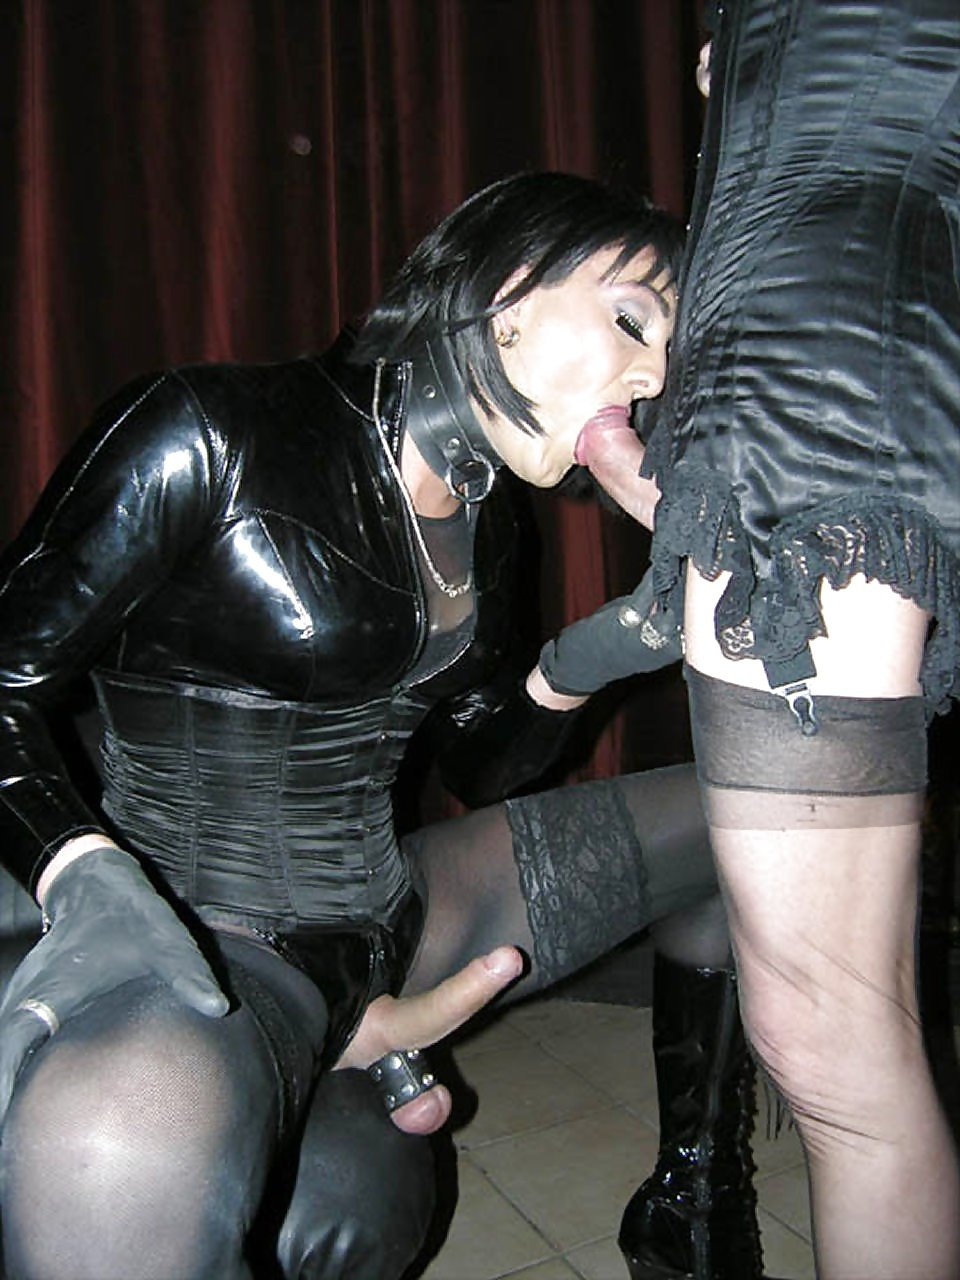 Cum fountain all over her leather gloves